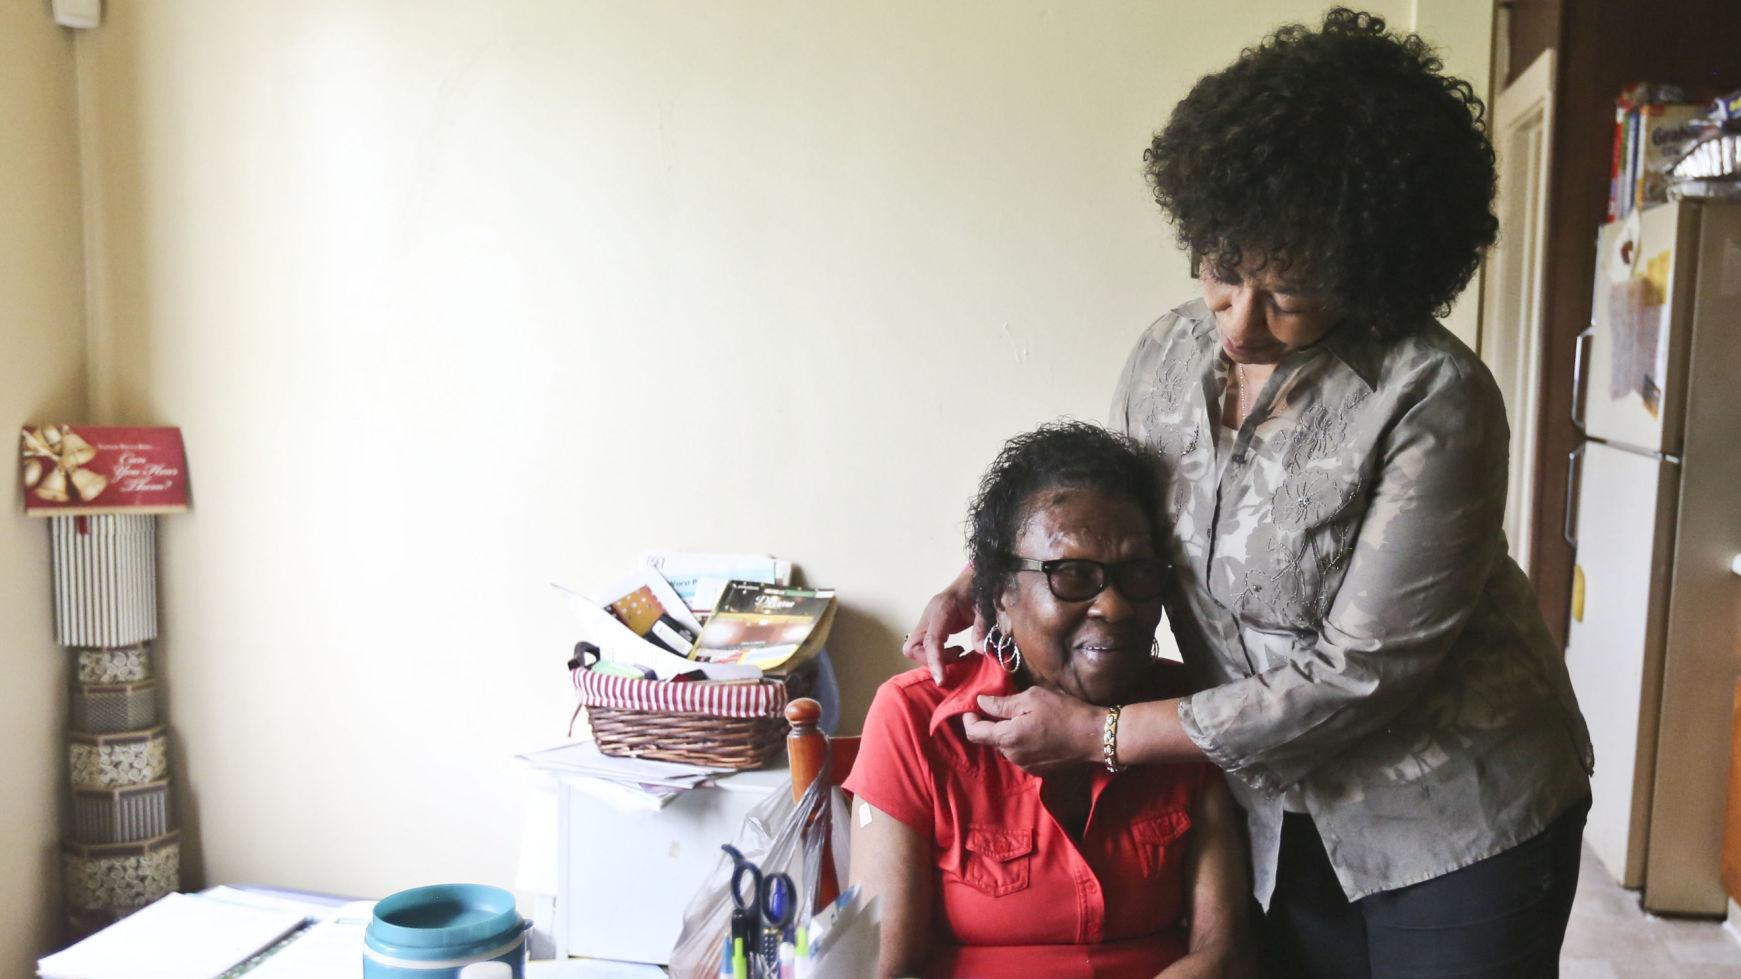 Decatur homecare provider helps others with care and compassion